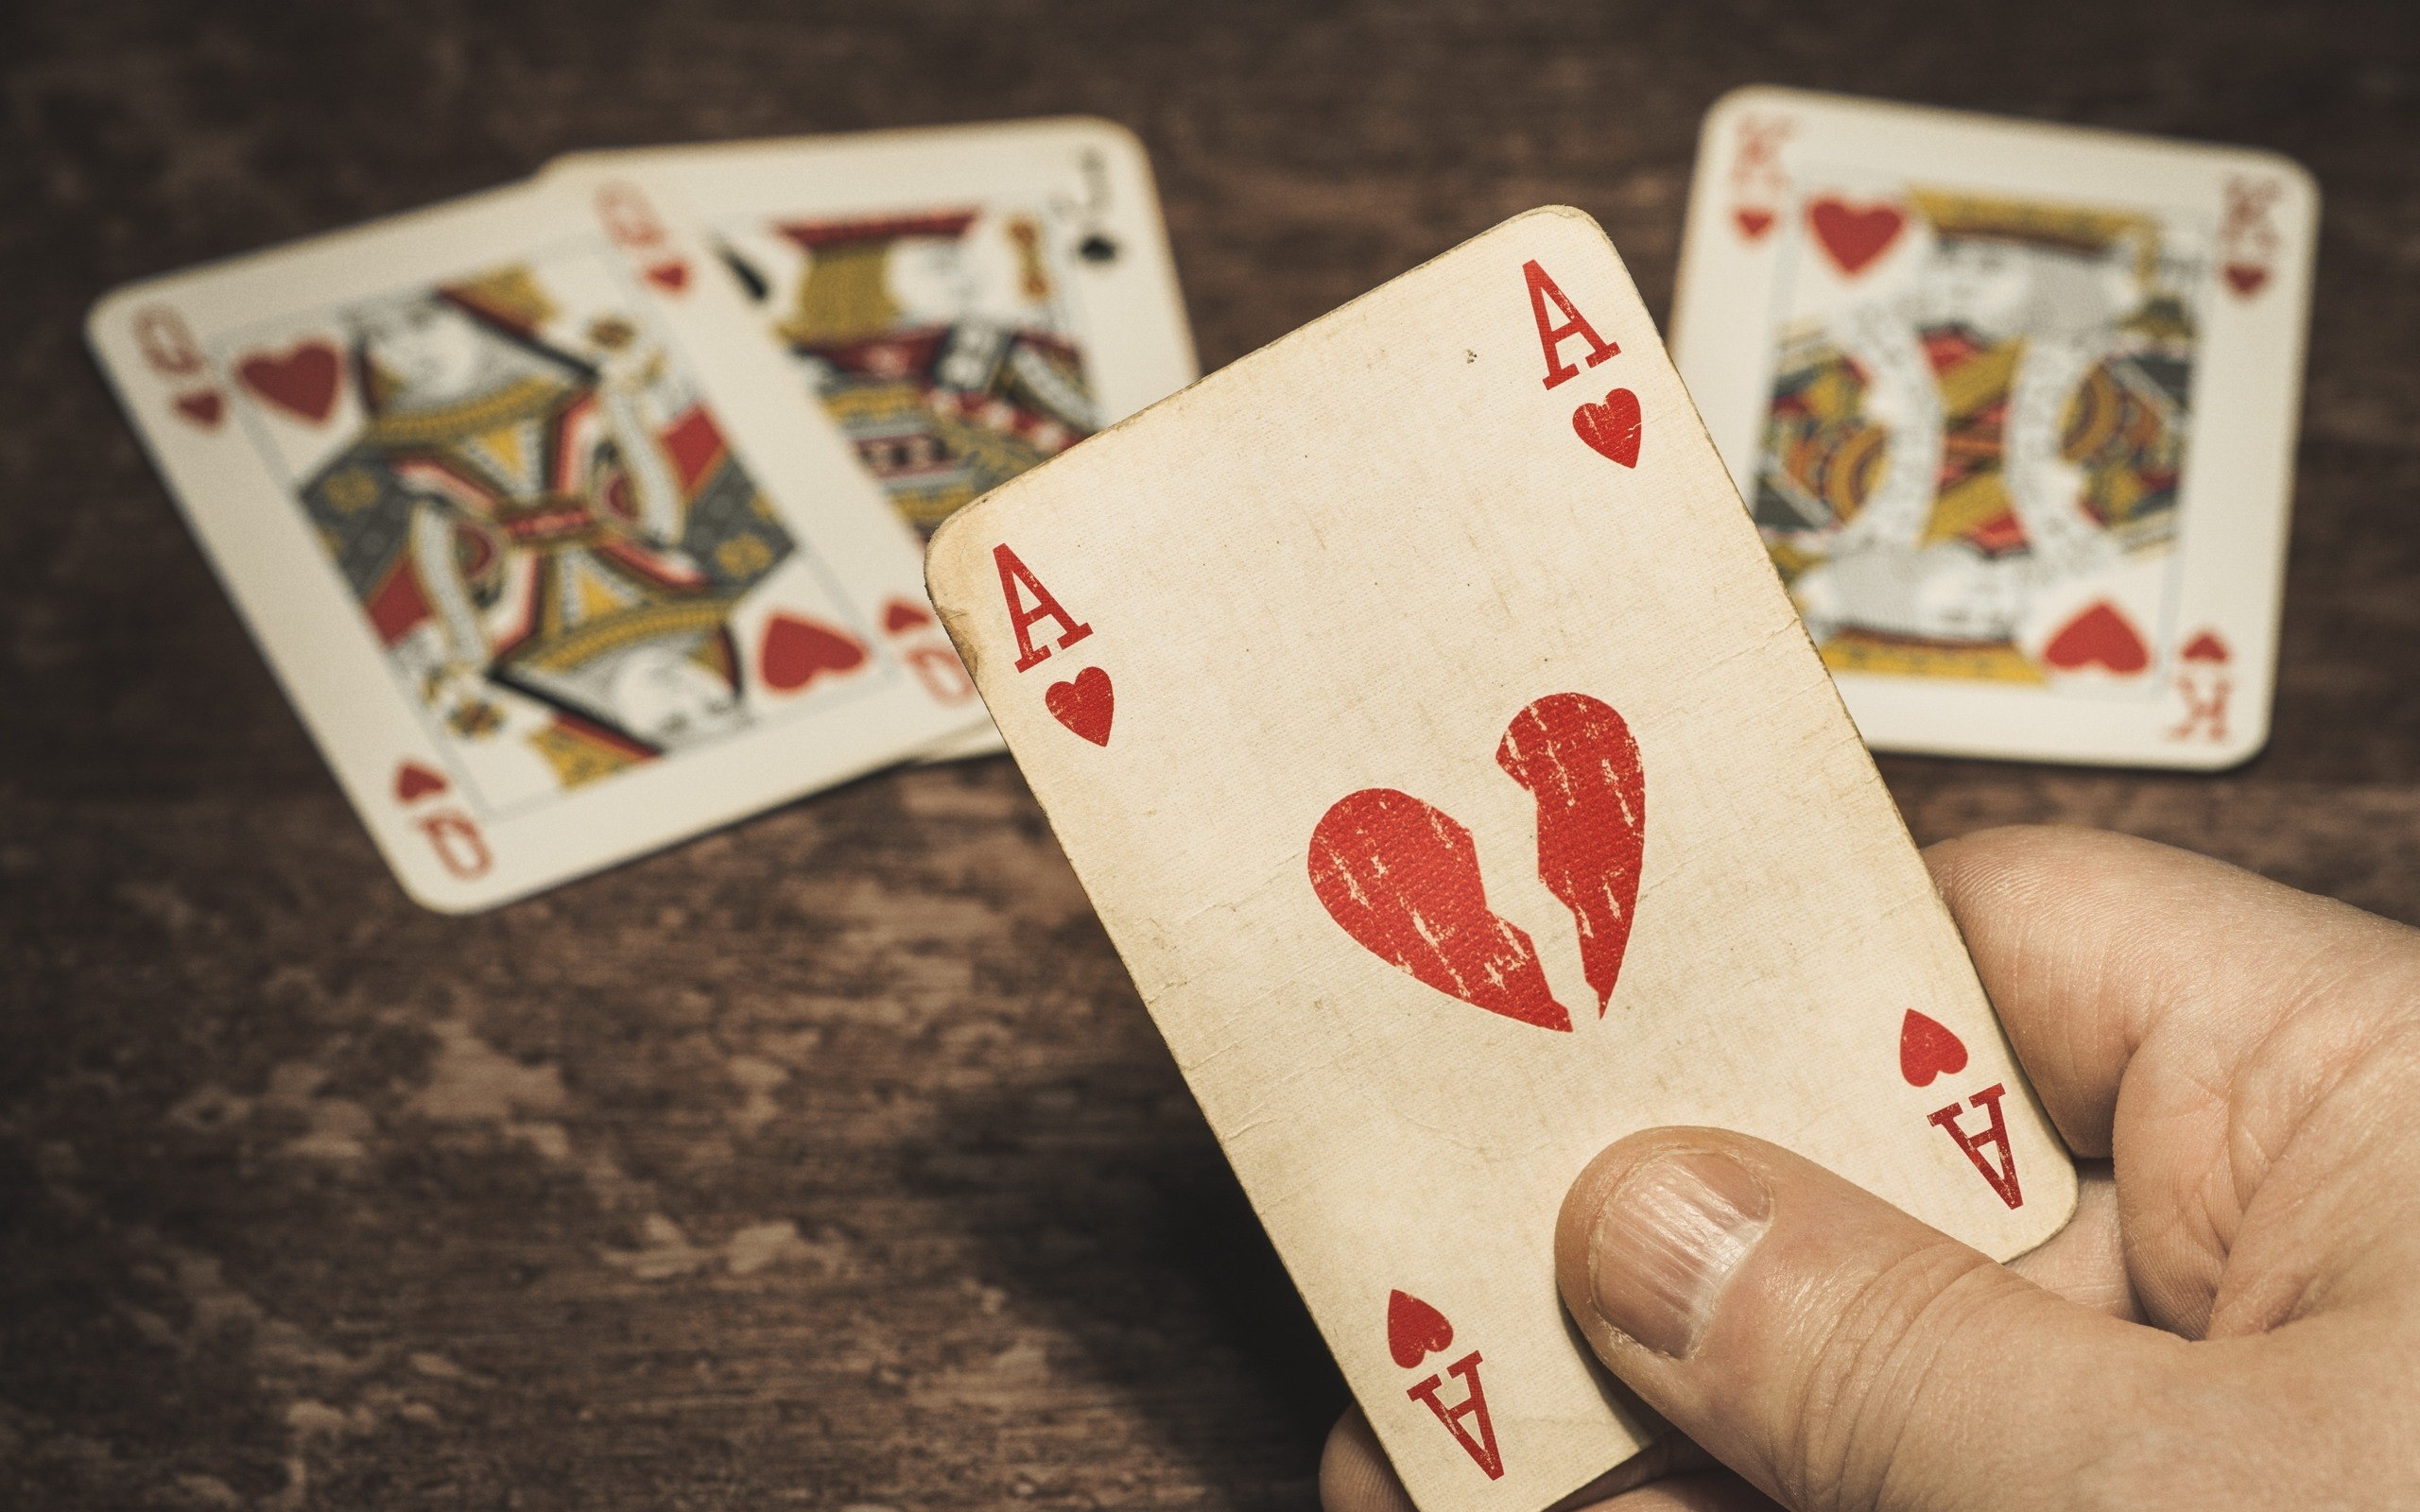 What Flawed With Gambling Game